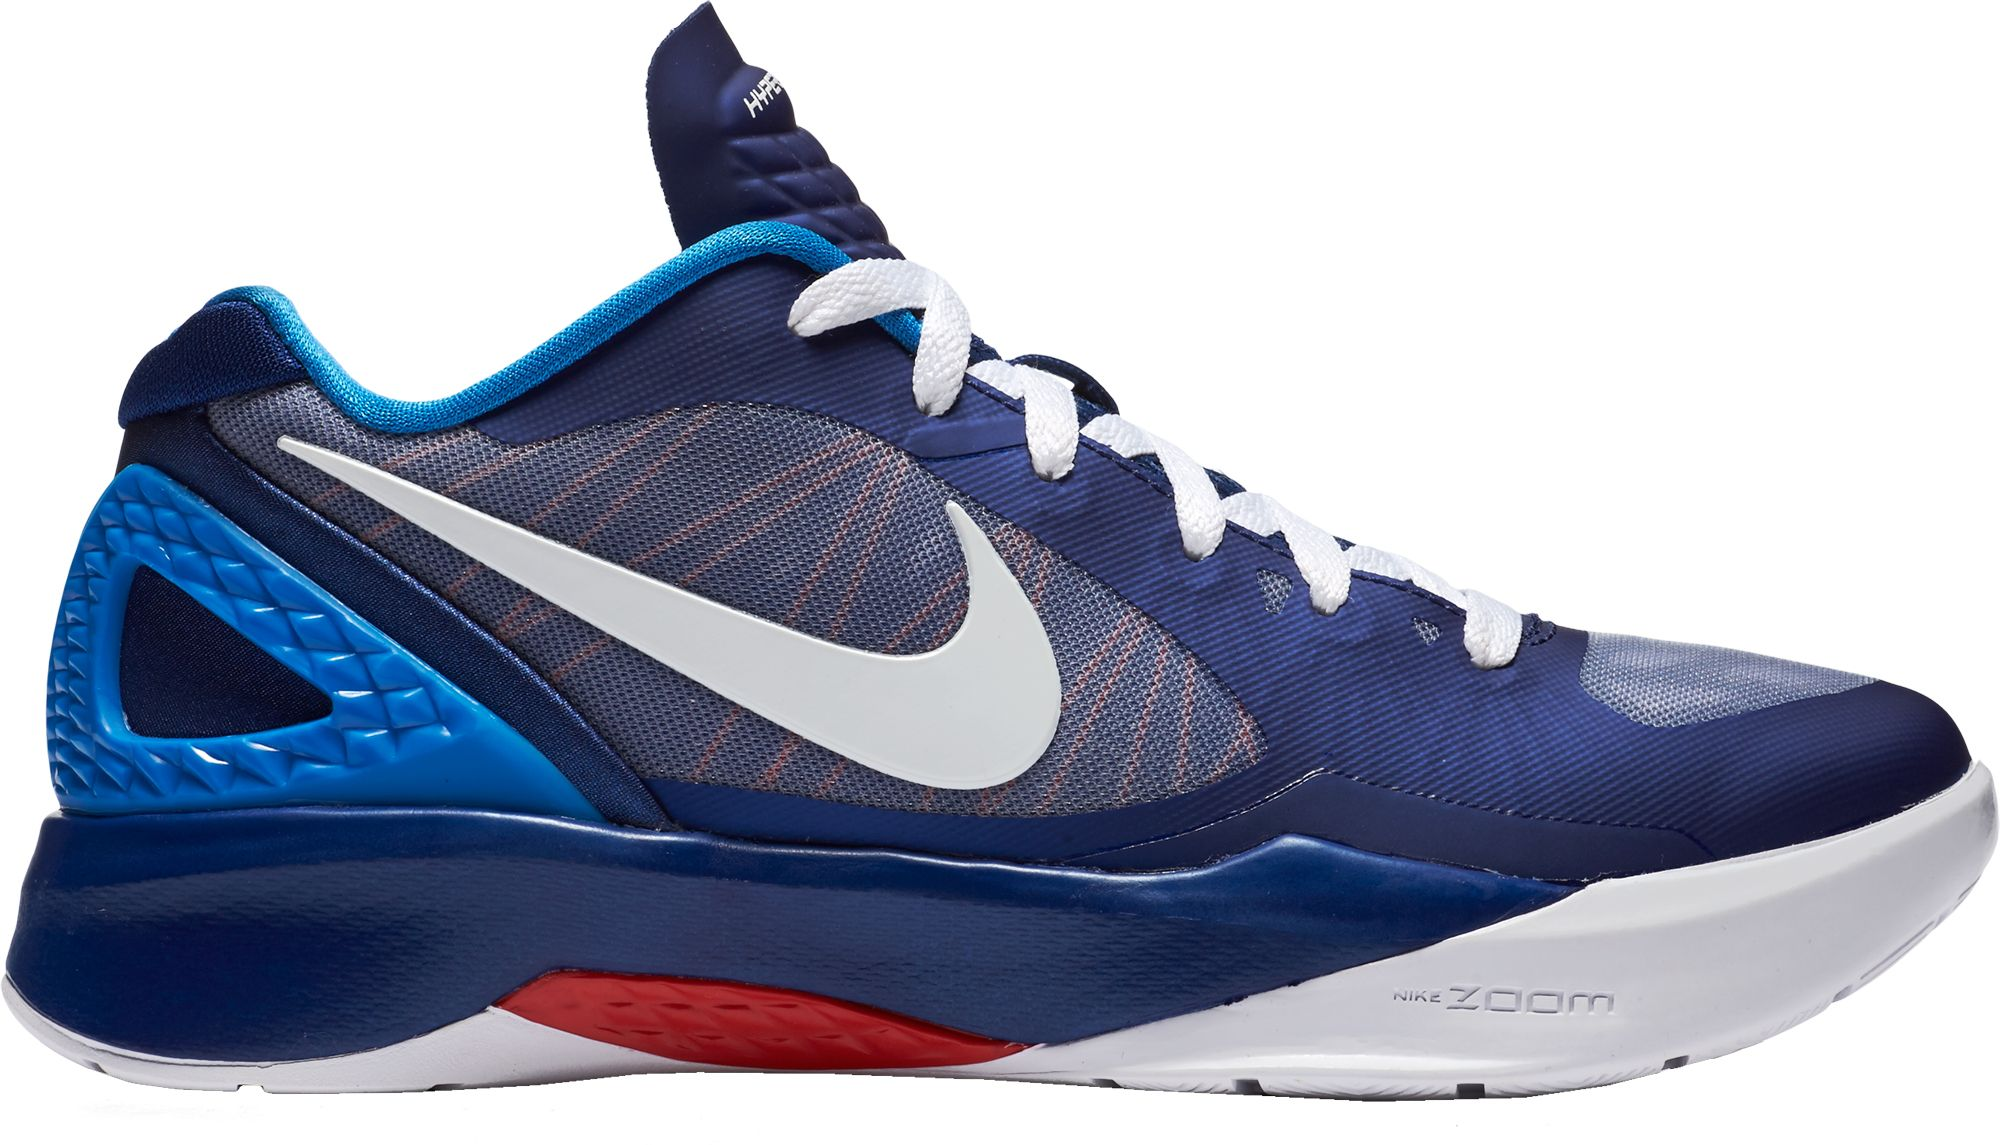 Royal Blue Nike Volleyball Shoes